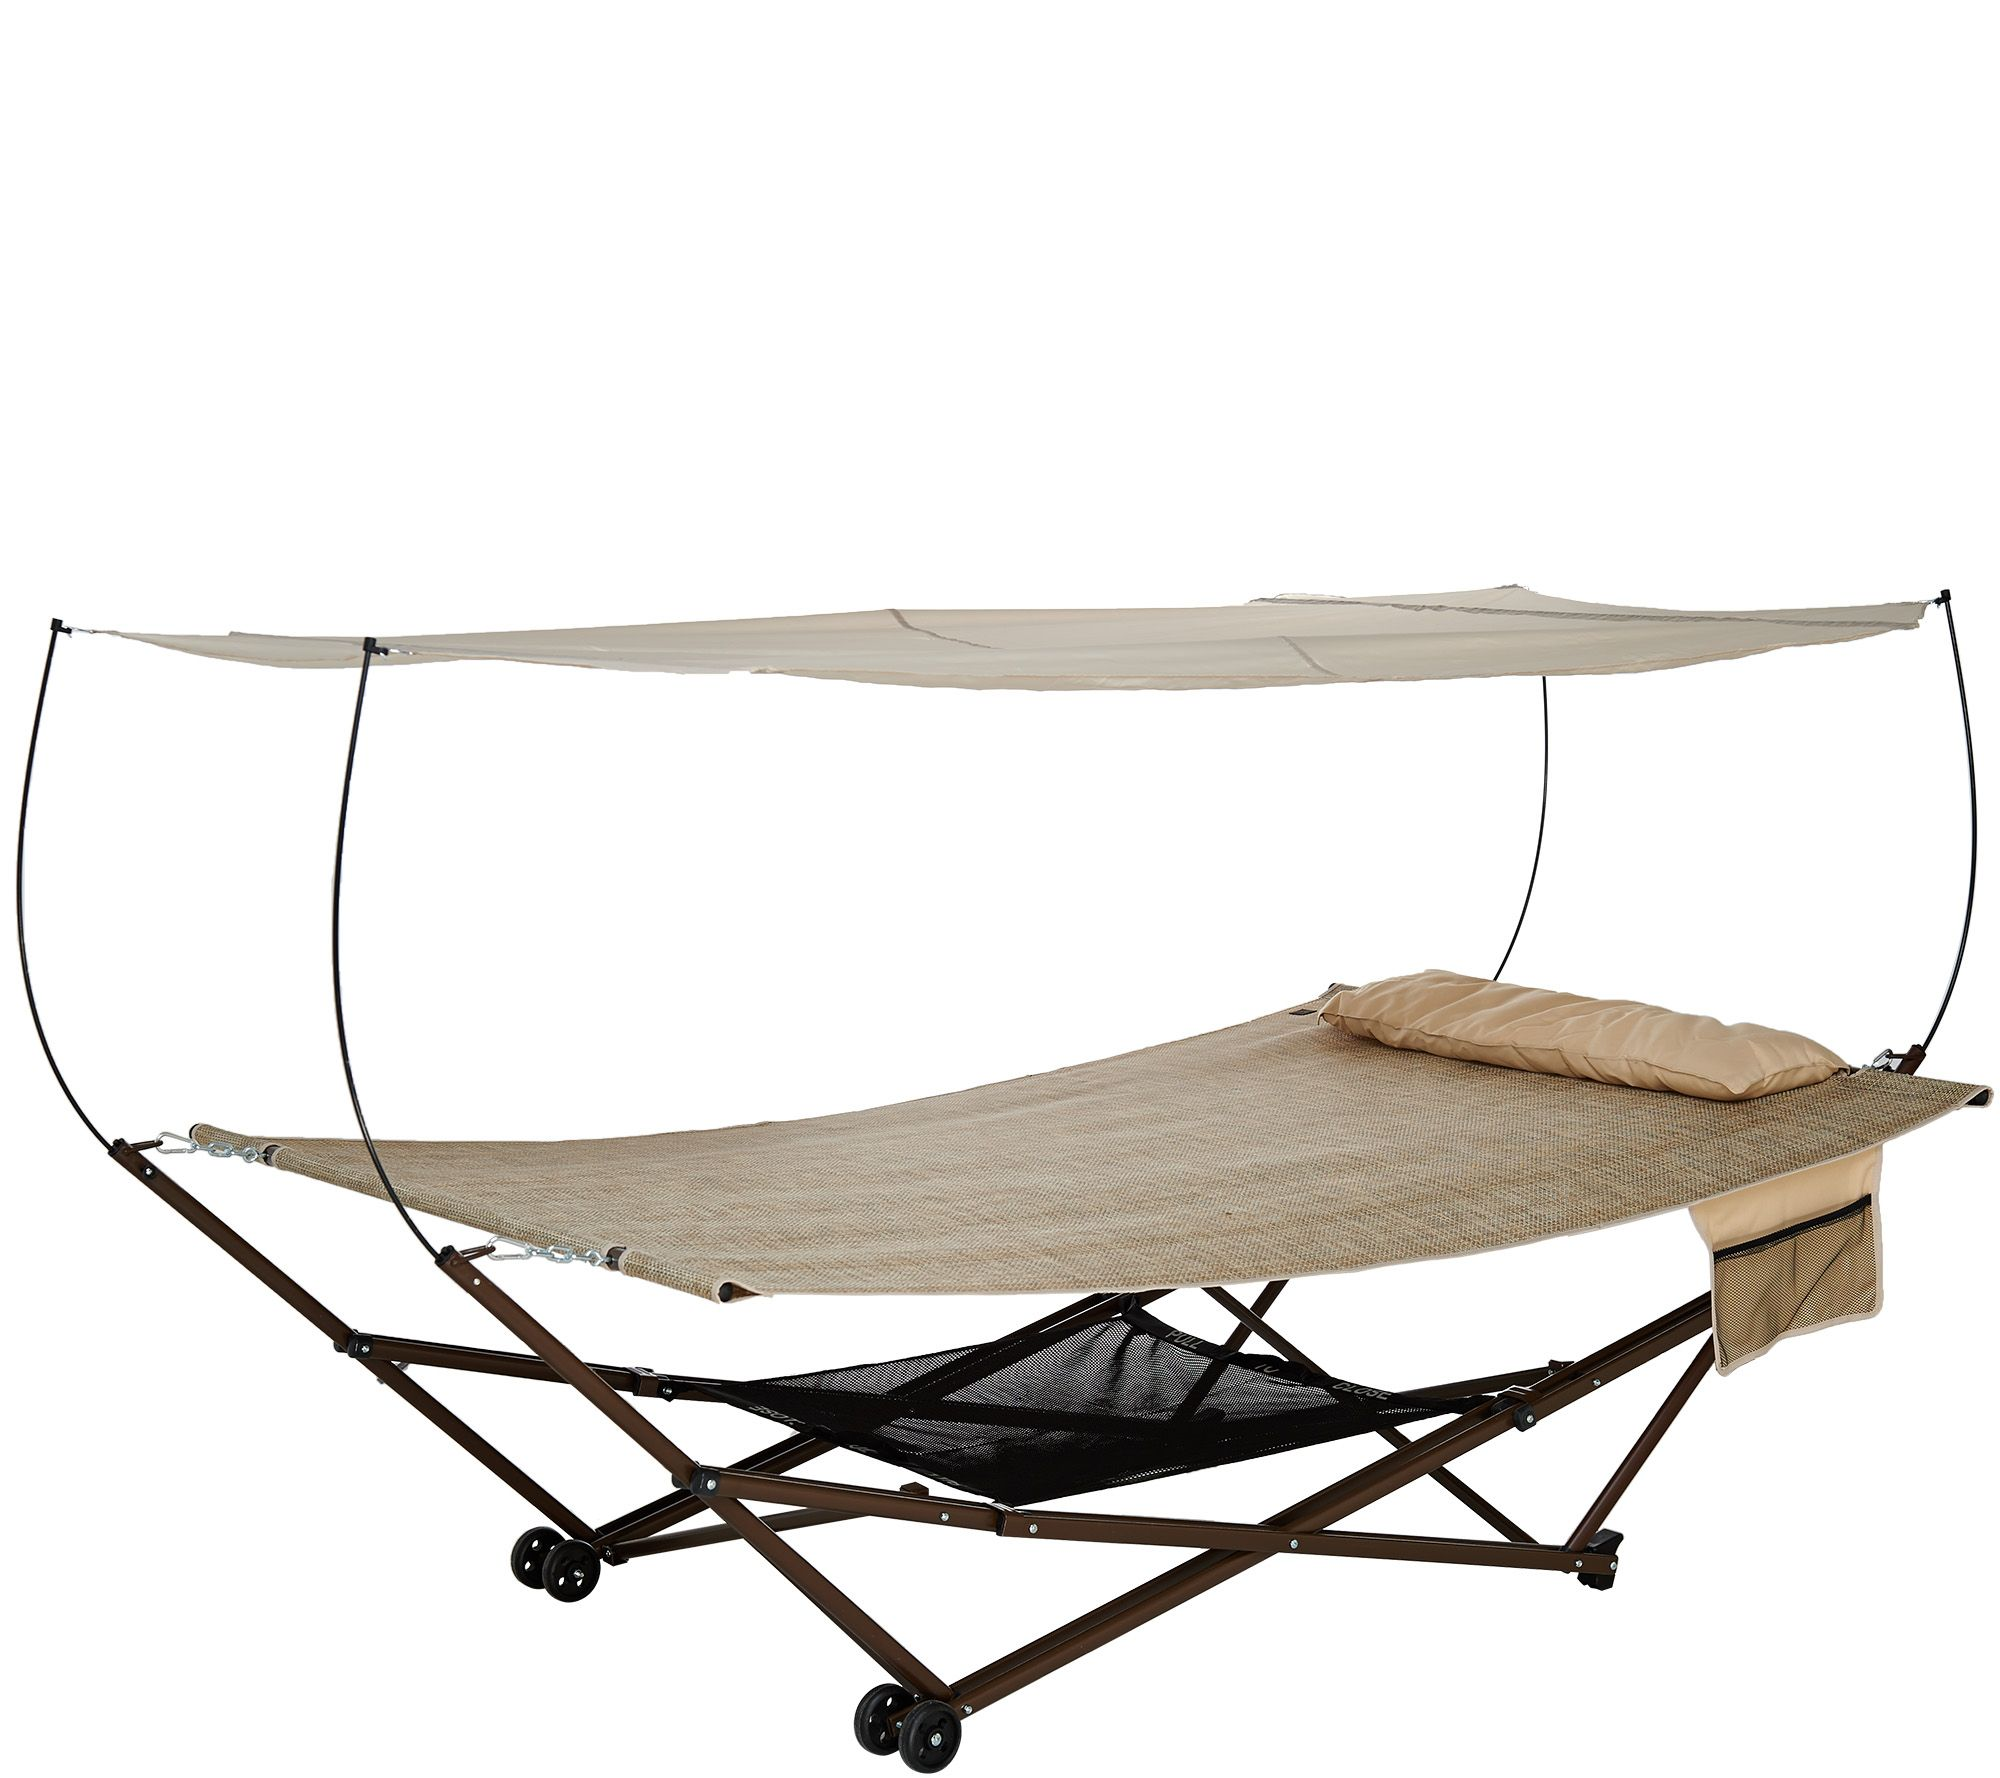 Bliss Hammocks 2-Person EZ Stow Hammock With Canopy Wheels and Bag - Page 1 u2014 QVC.com  sc 1 st  QVC.com & Bliss Hammocks 2-Person EZ Stow Hammock With Canopy Wheels and Bag ...